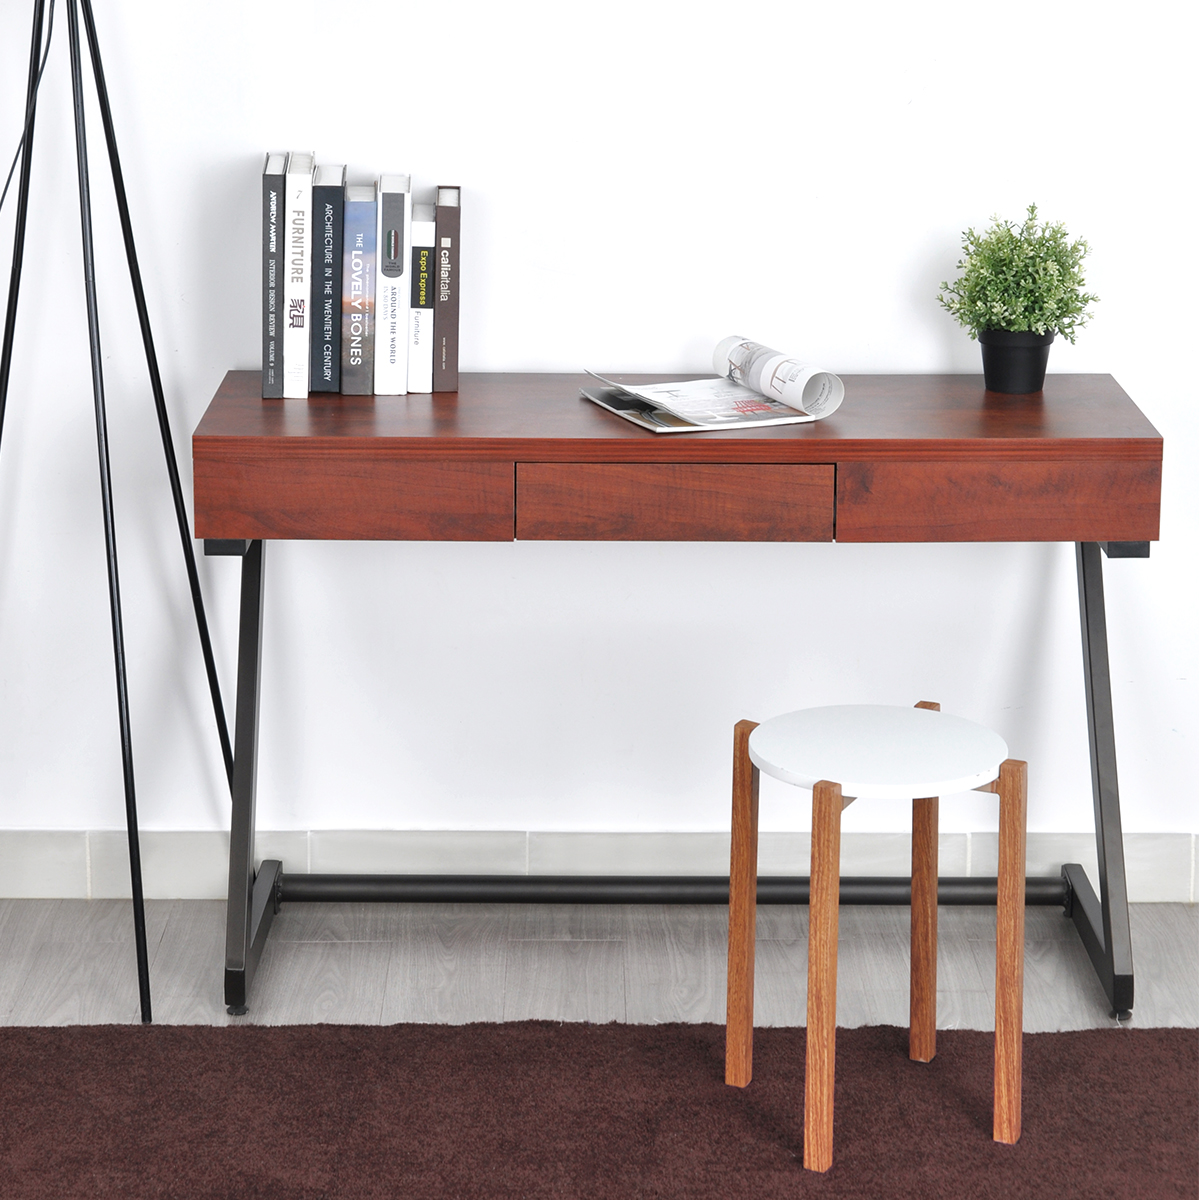 Incroyable Retro Console Table Computer Desk Industrial Iron Z Shape Metal Leg Brown